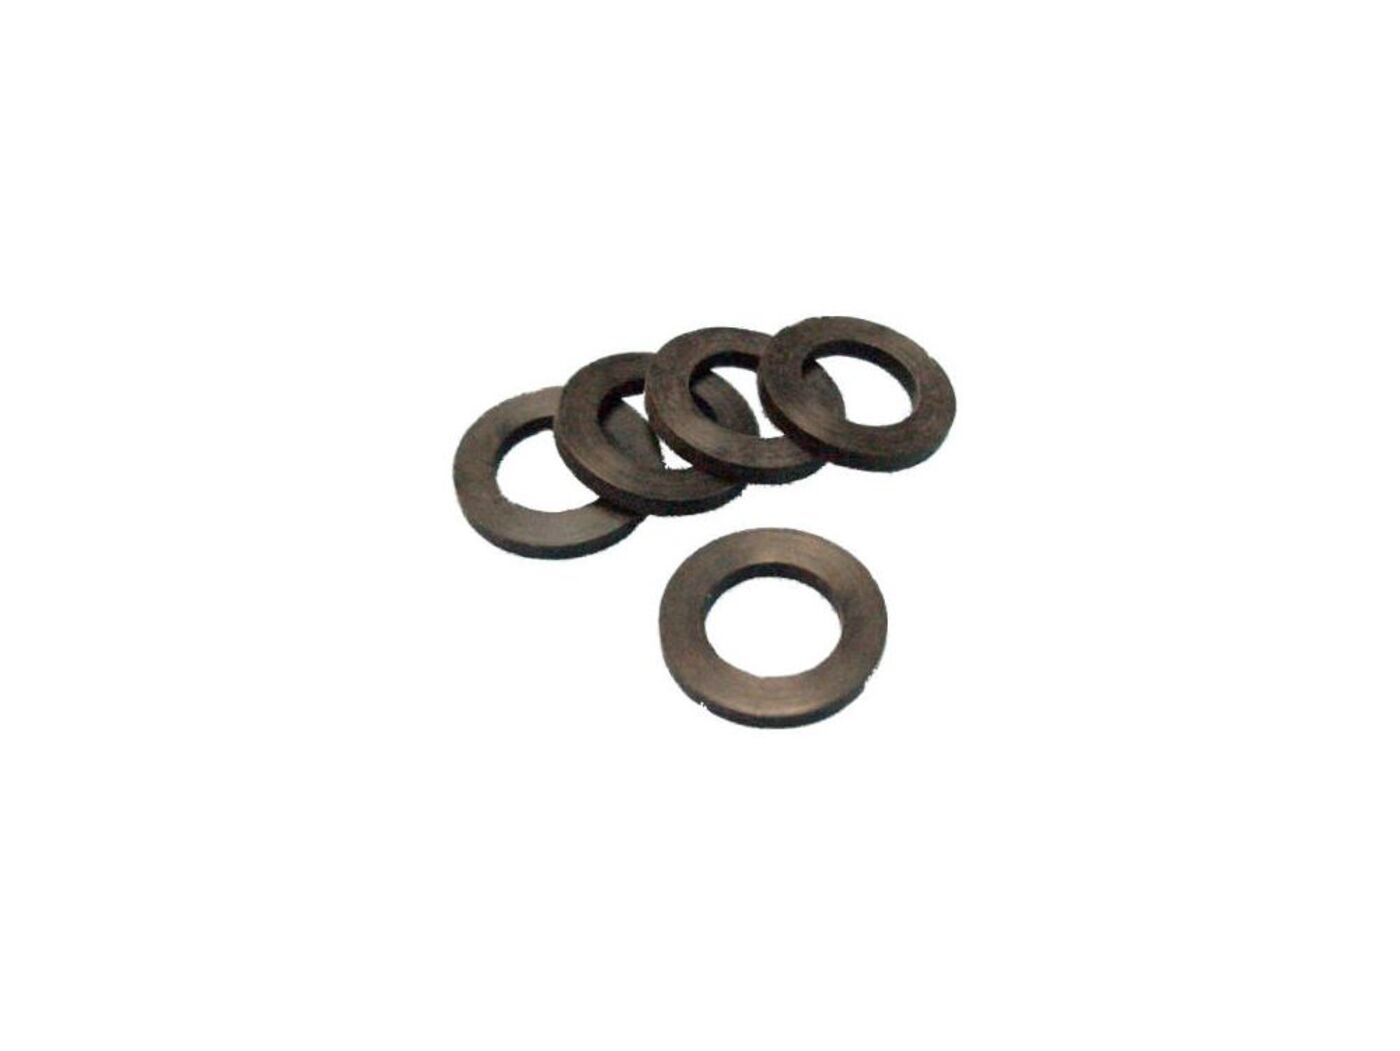 Gas Pig Tail Stem Washer - Pack of 5 - Homestead Caravans